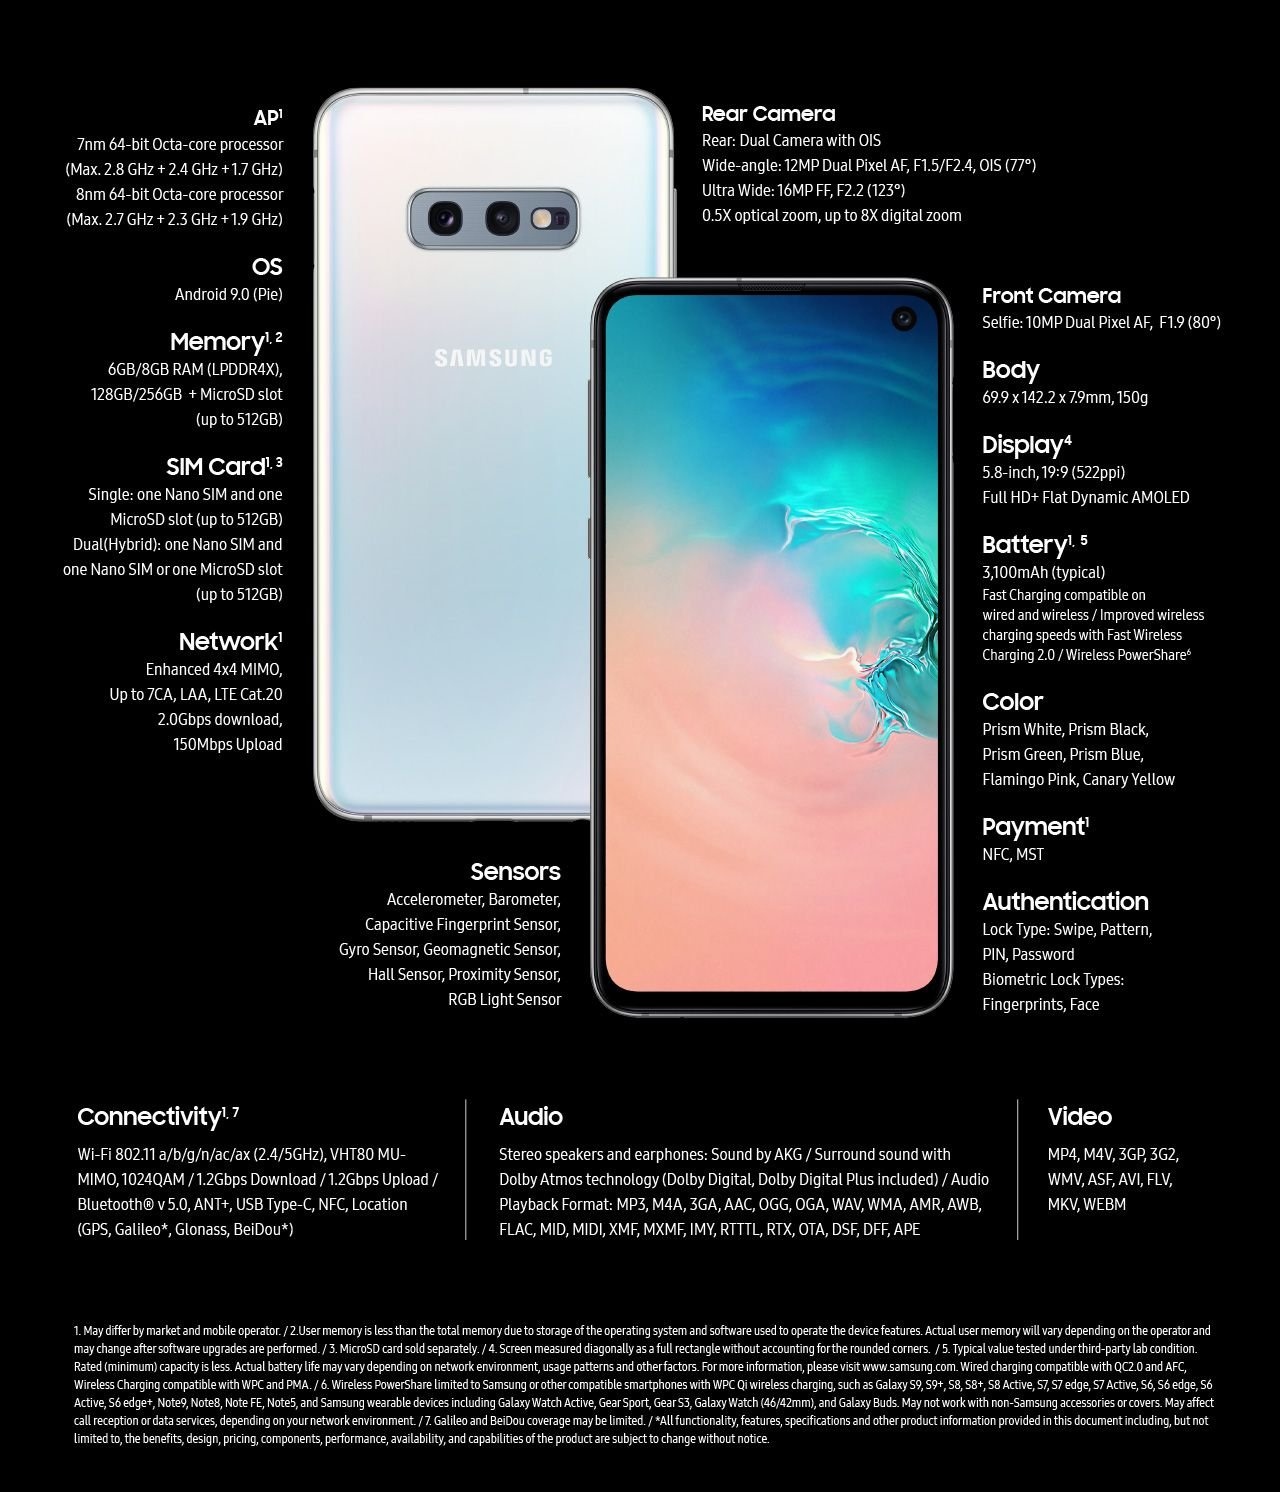 Samsung Galaxy S10e: Technical Specifications 2